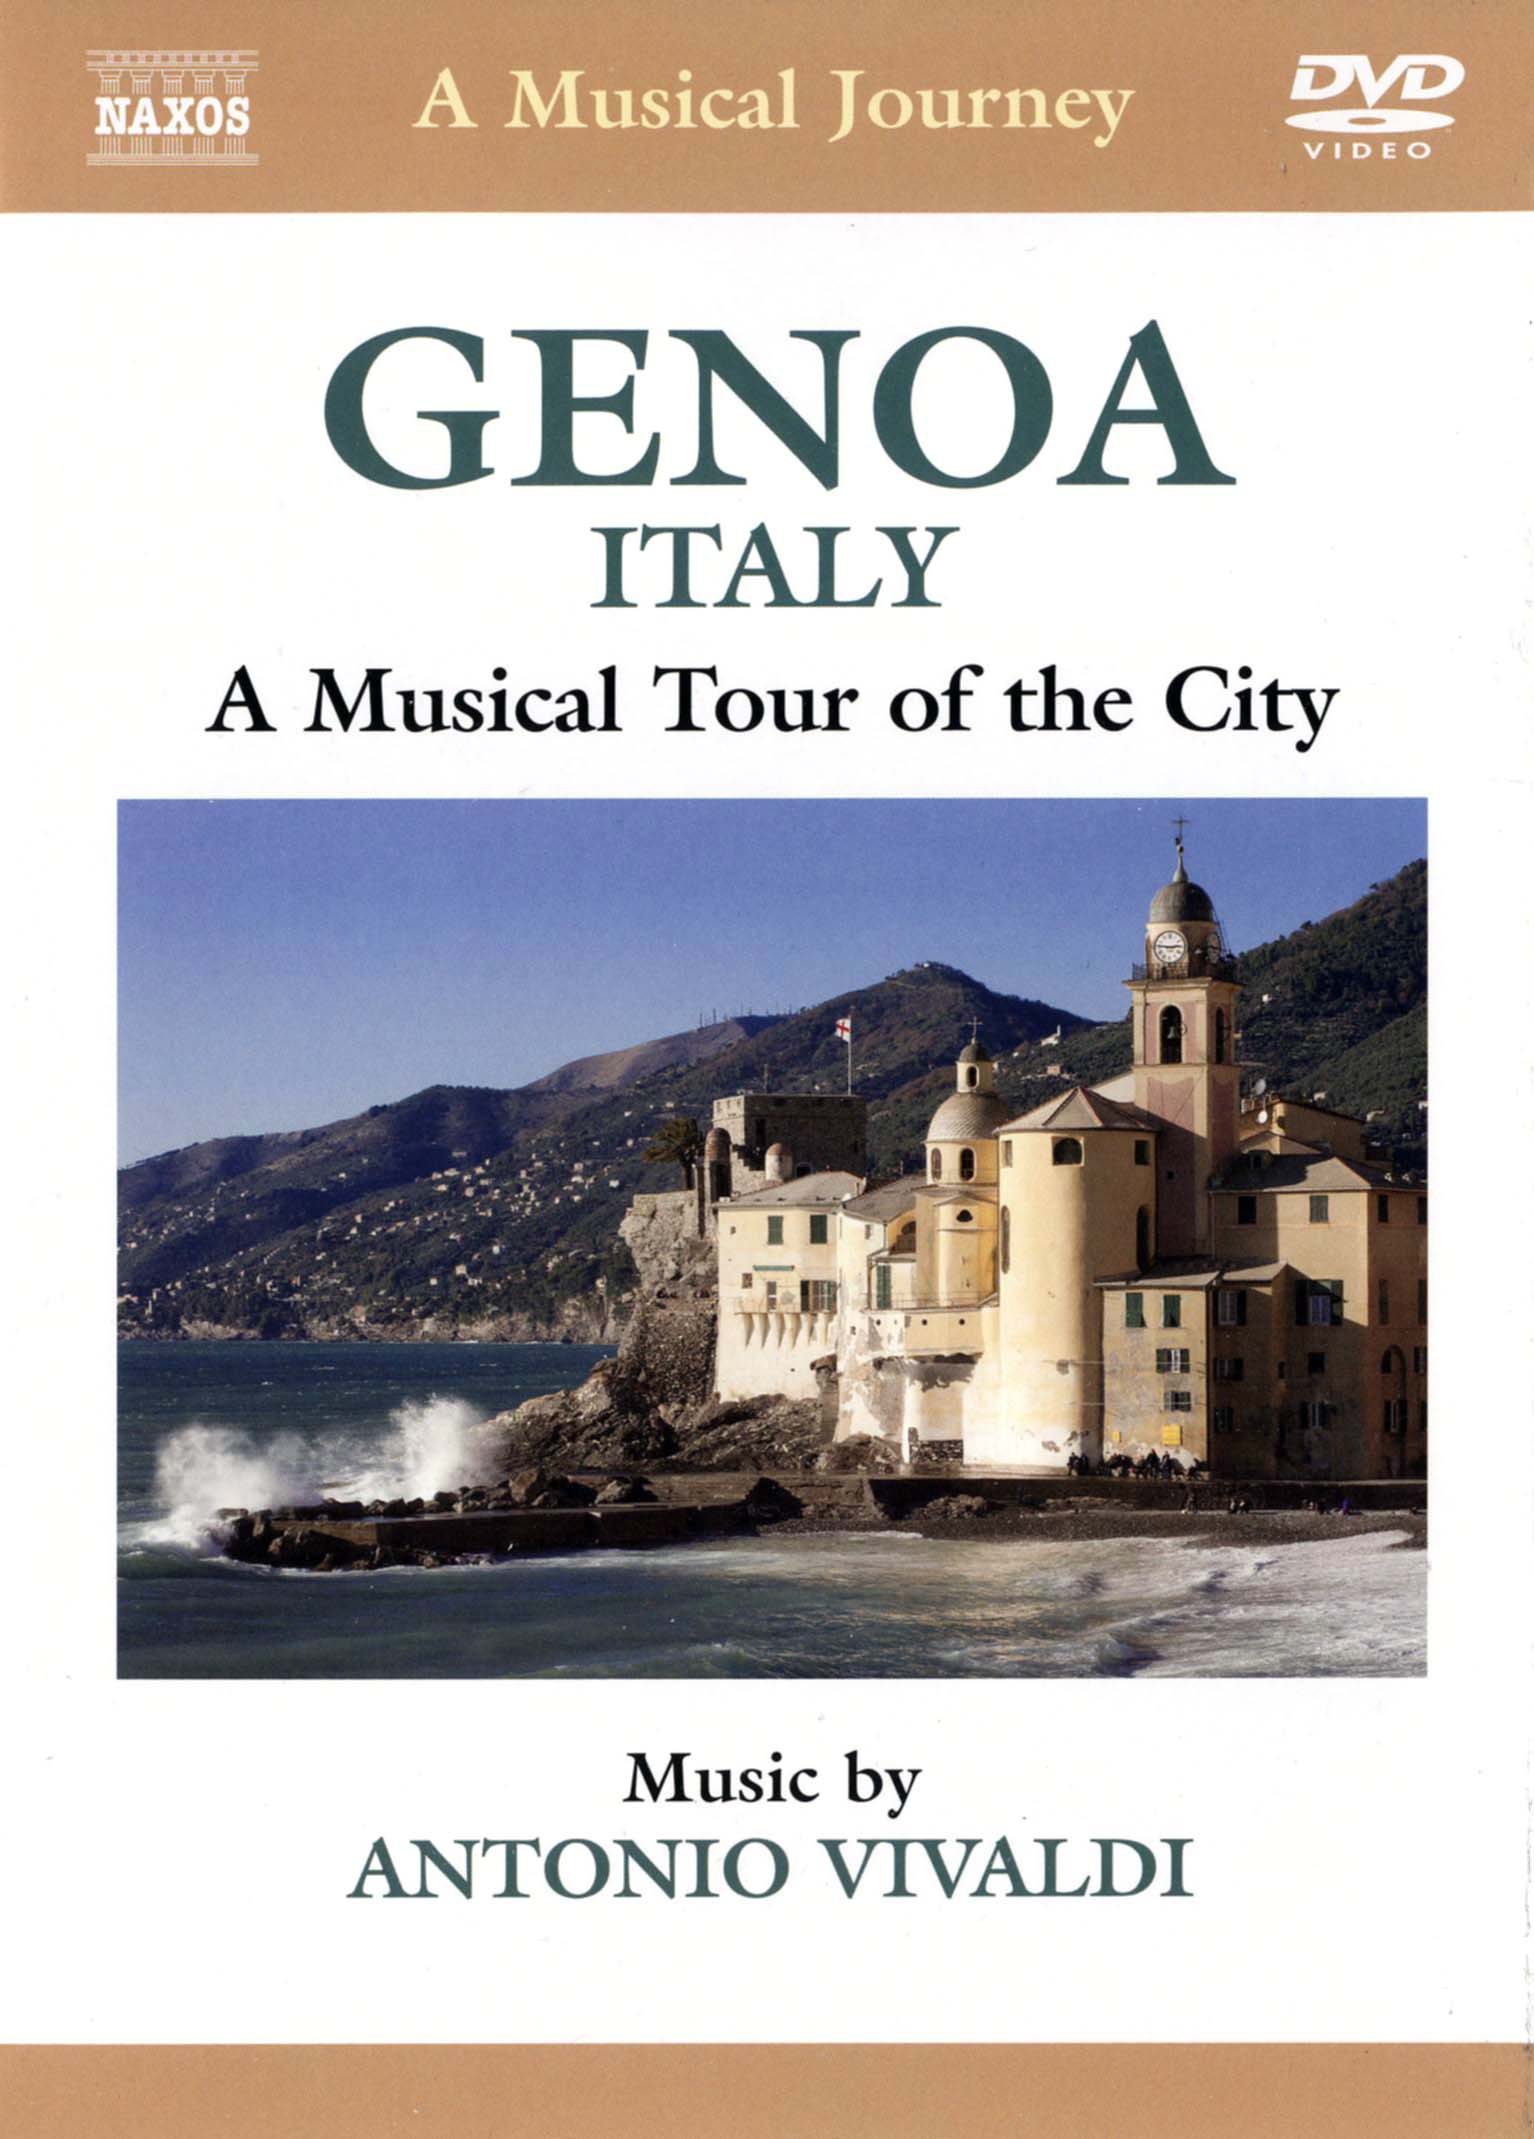 A Musical Journey: Genoa, Italy - A Musical Tour of the City